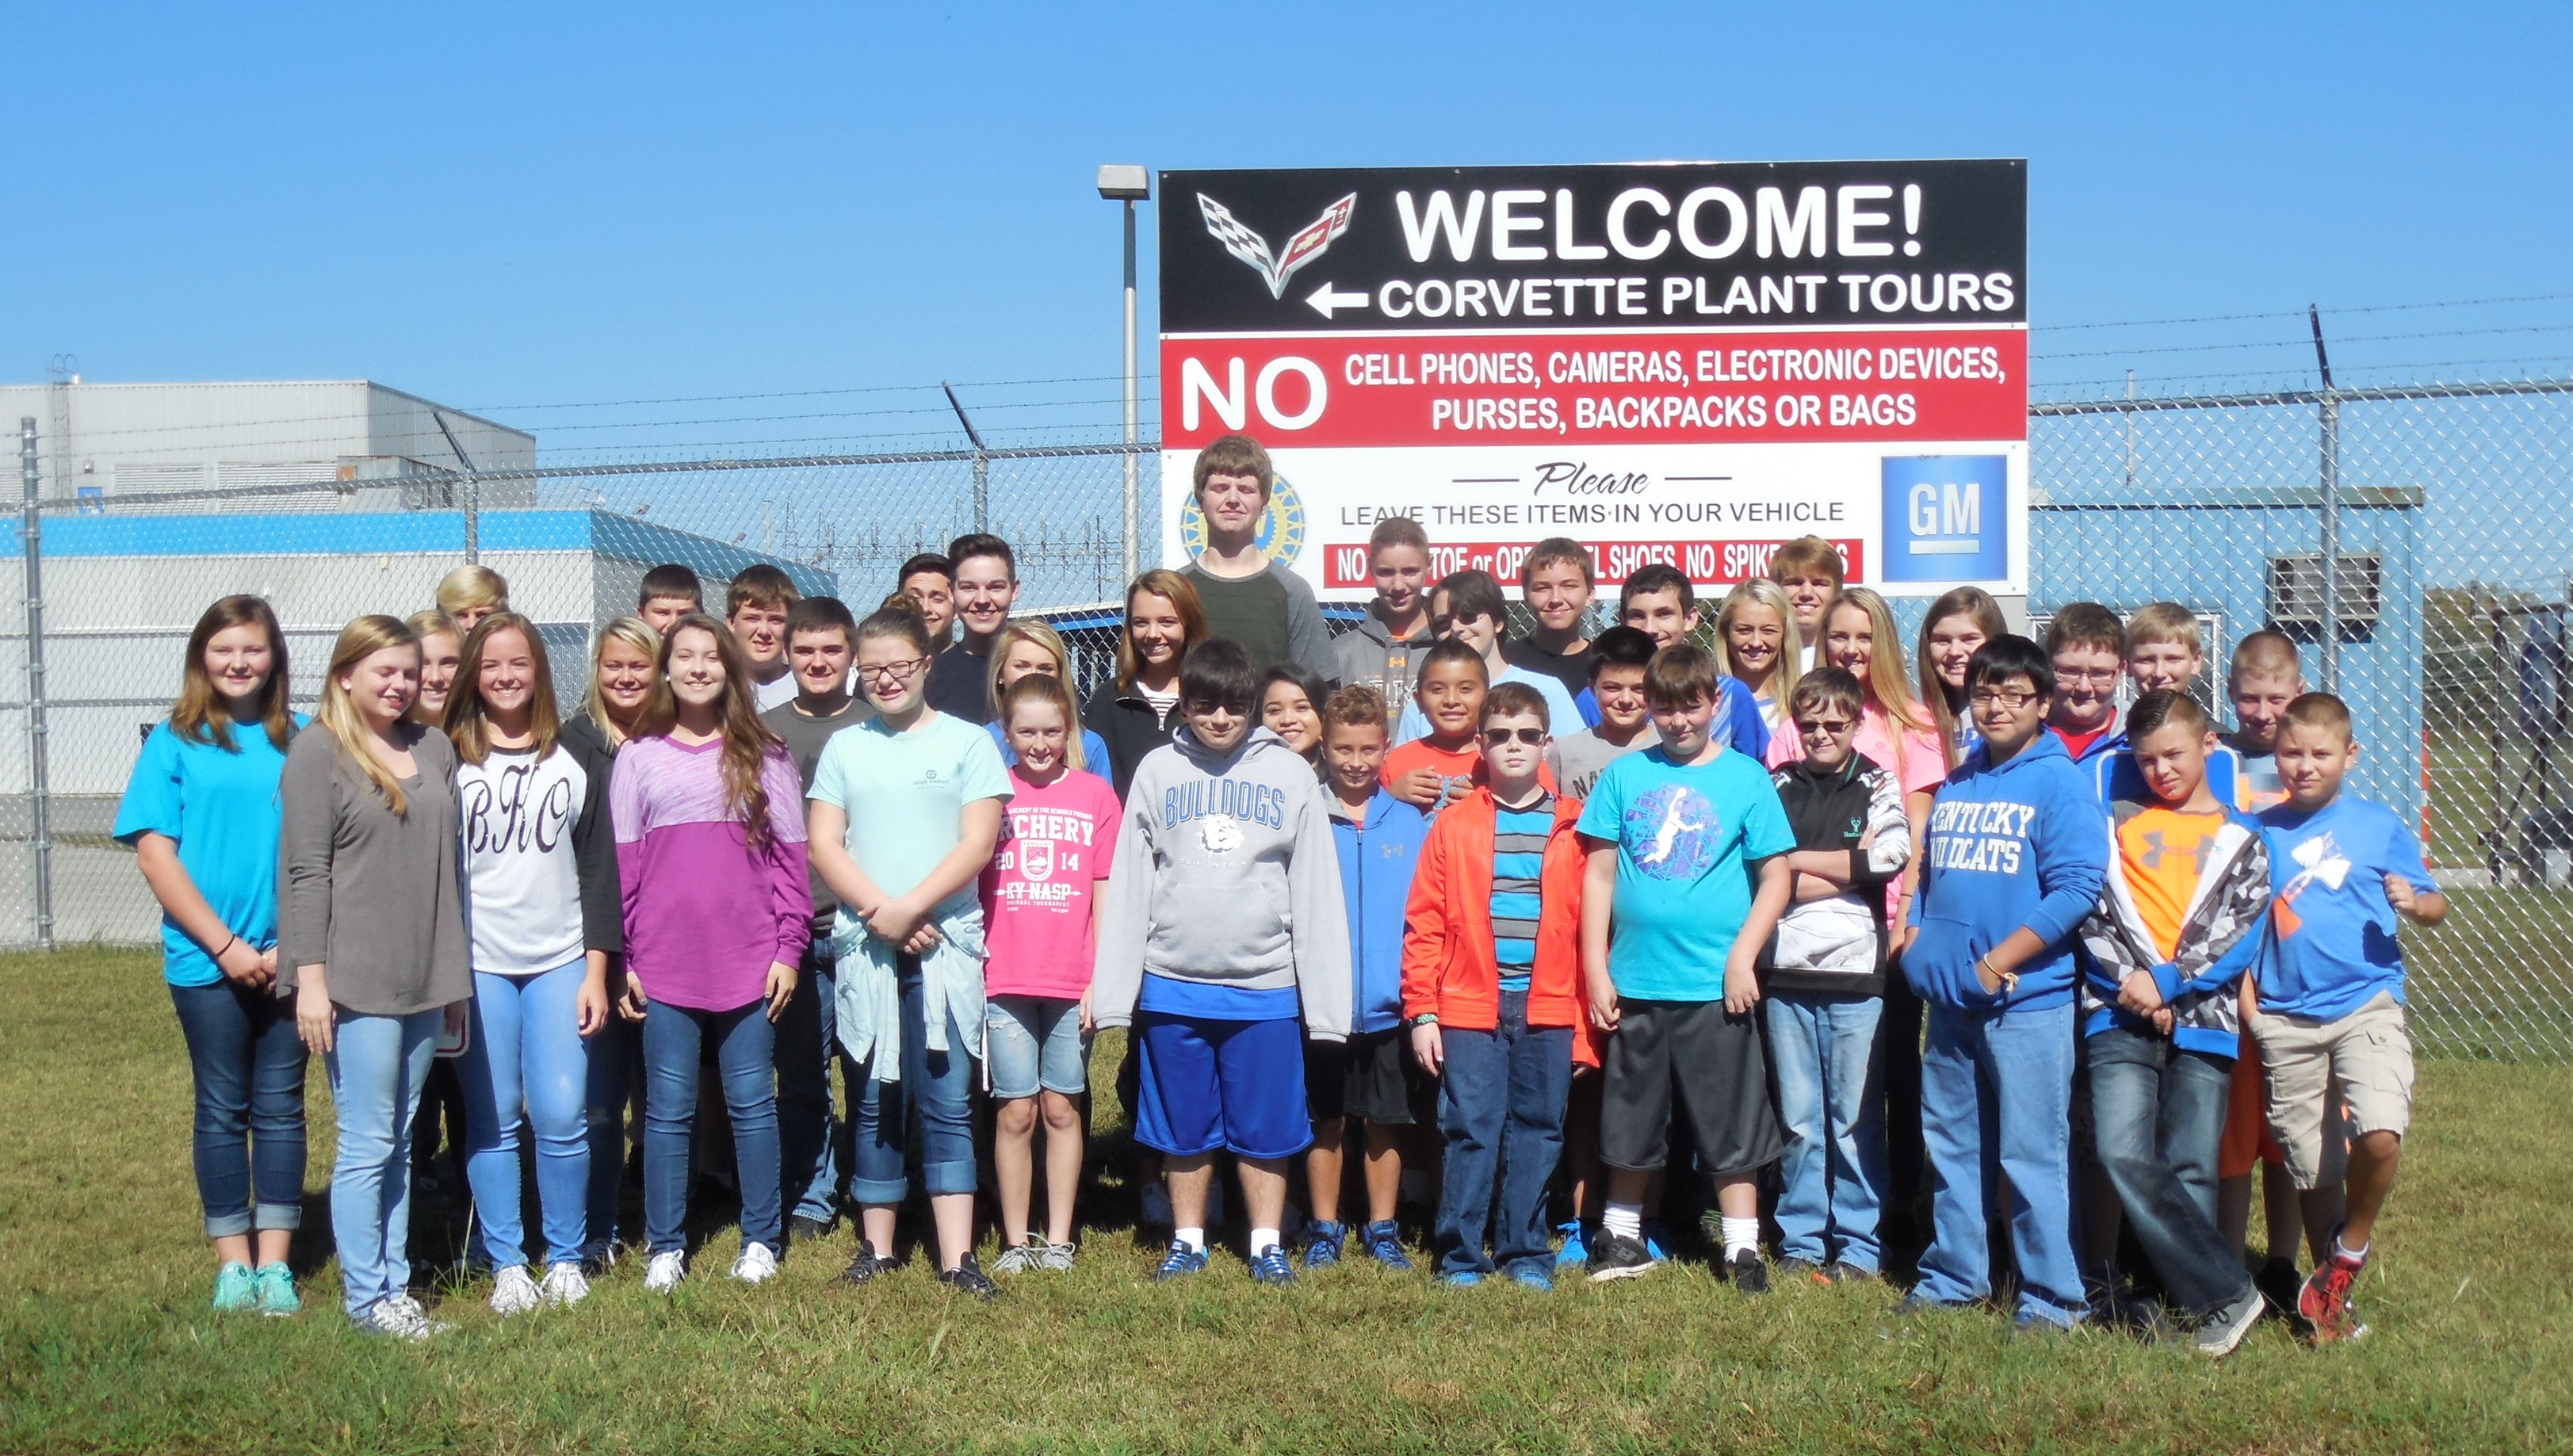 On Tuesday, September 27th, CCMS and CCHS students traveled to Bowling Green to experience the making of an American icon - the Corvette.